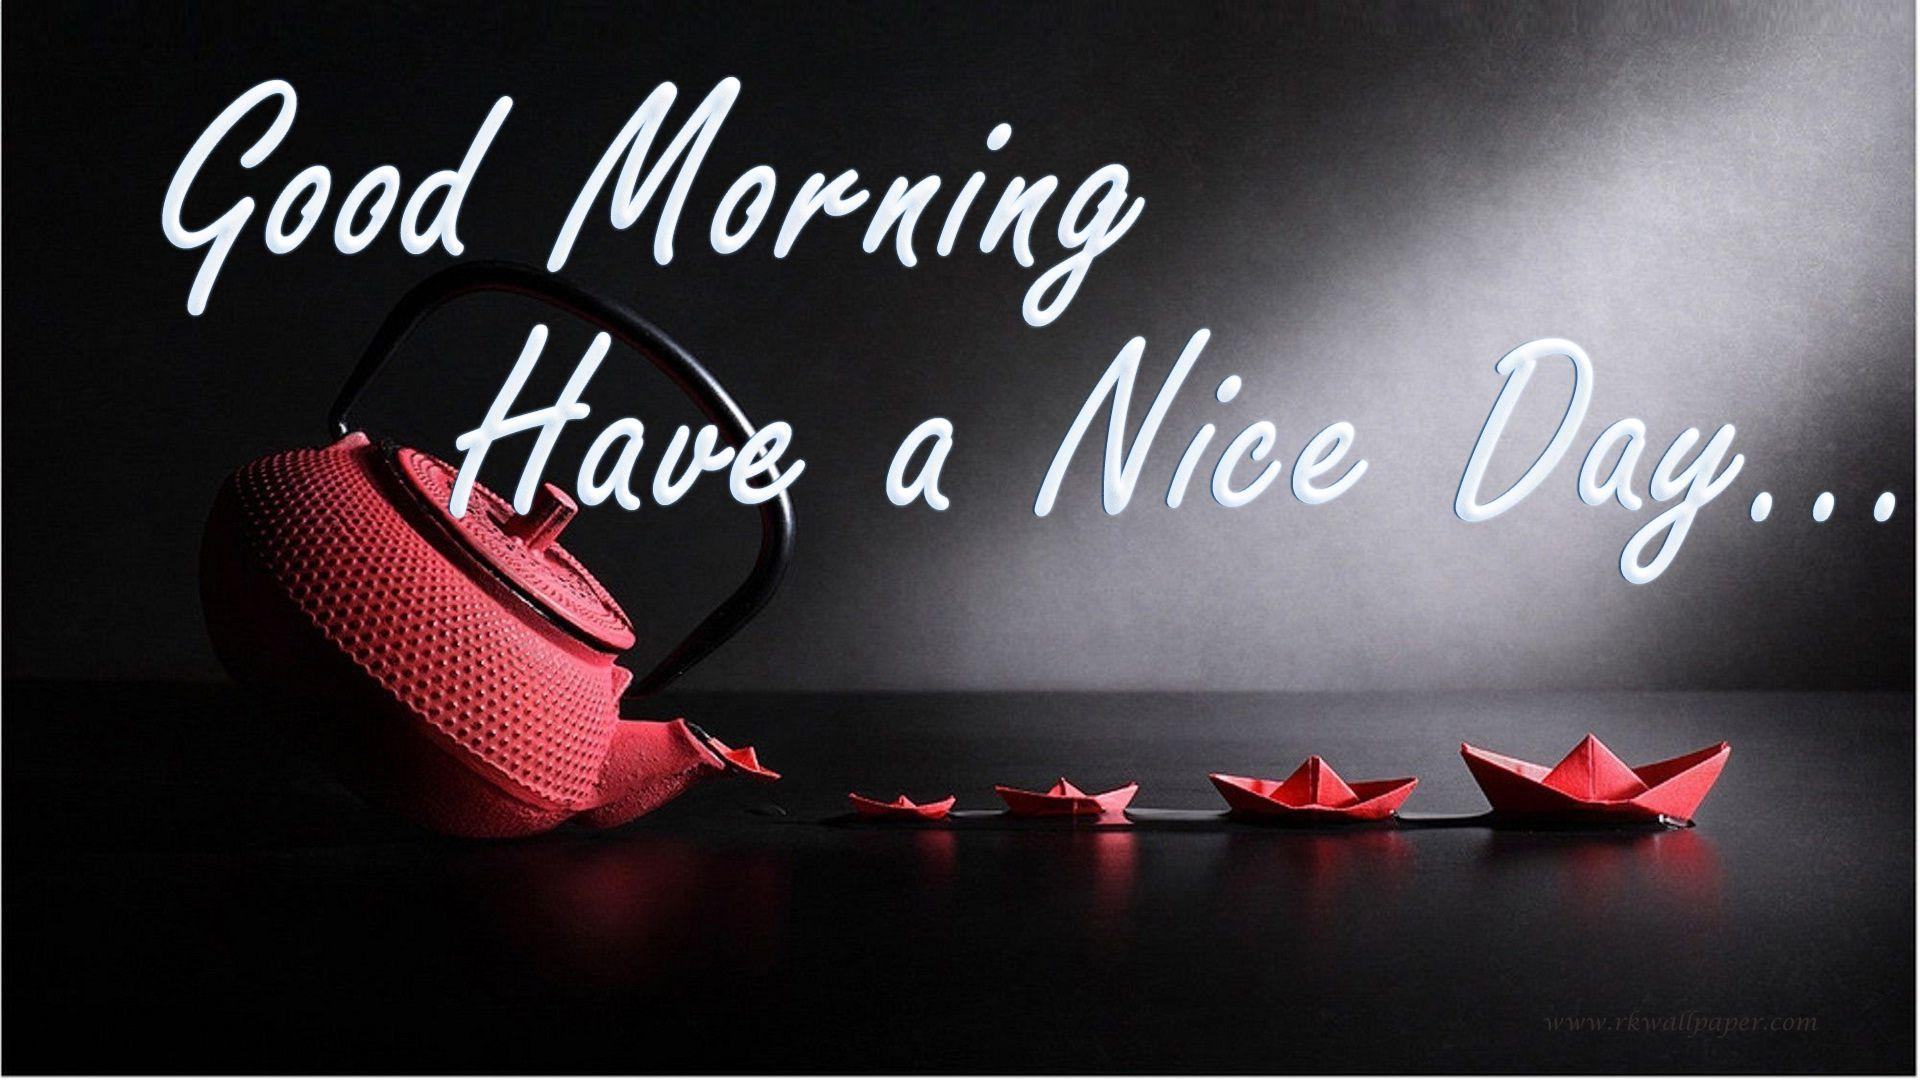 Have A Nice Day Wallpapers Wallpaper Cave